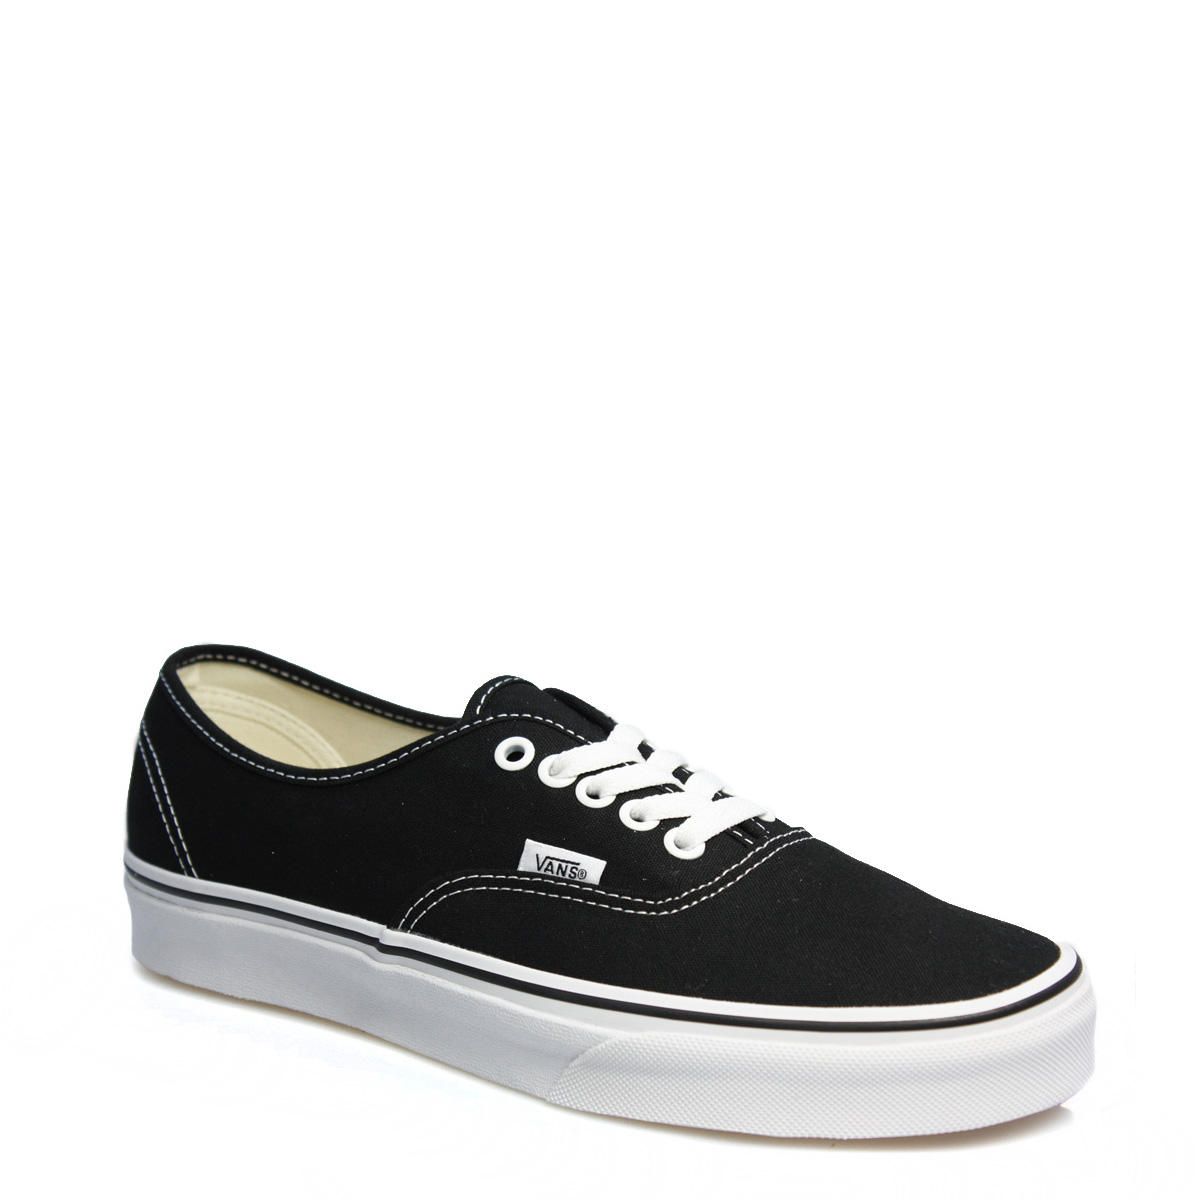 Vans Unisex Mens Canvas, Damenschuhe Authentic Trainers, schwarz or WEISS, Canvas, Mens Casual Schuhes 85f472